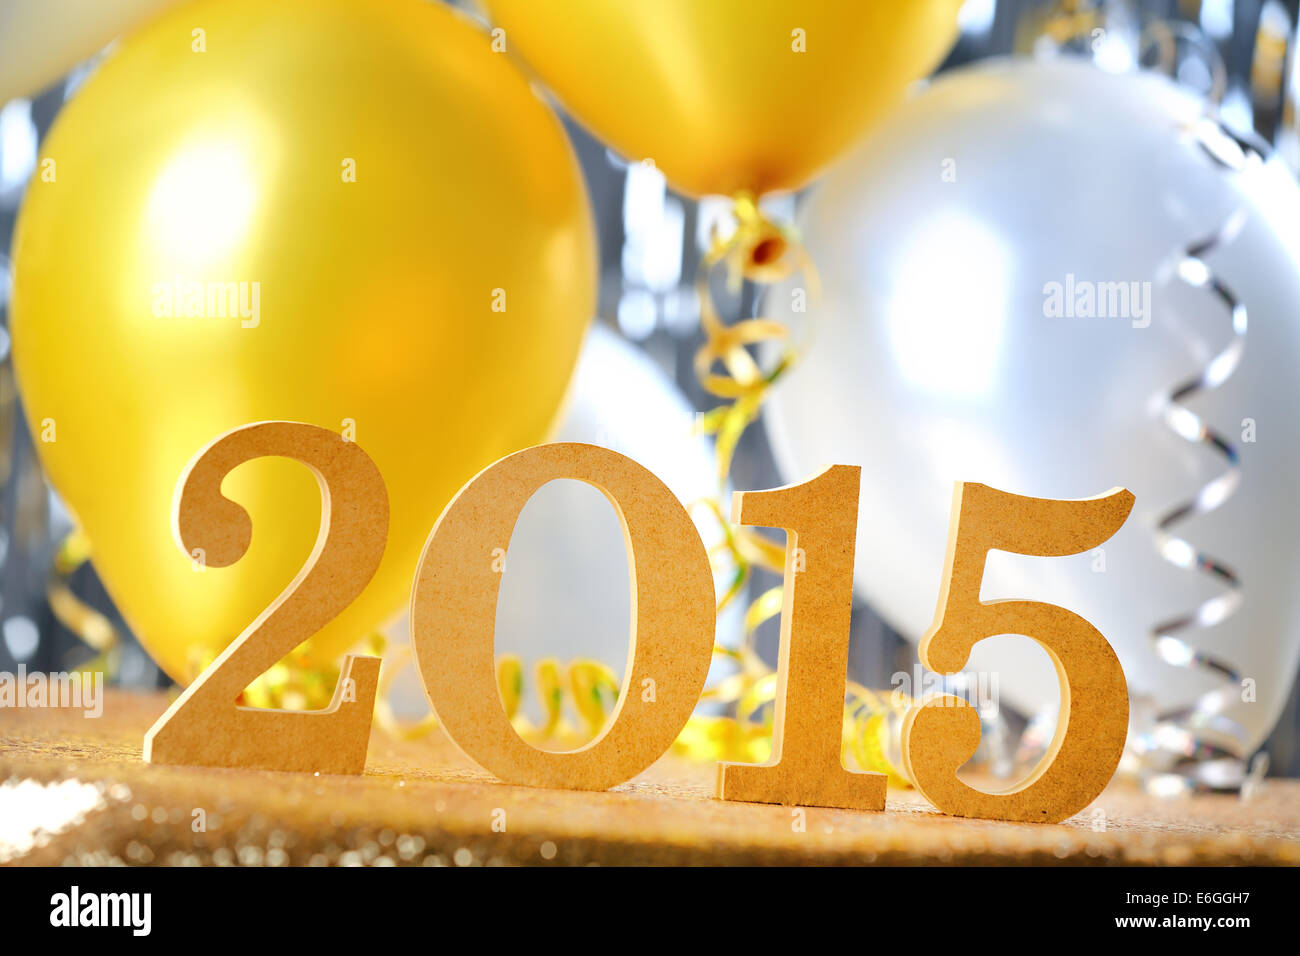 New Year 2015 decoration with balloon - Stock Image